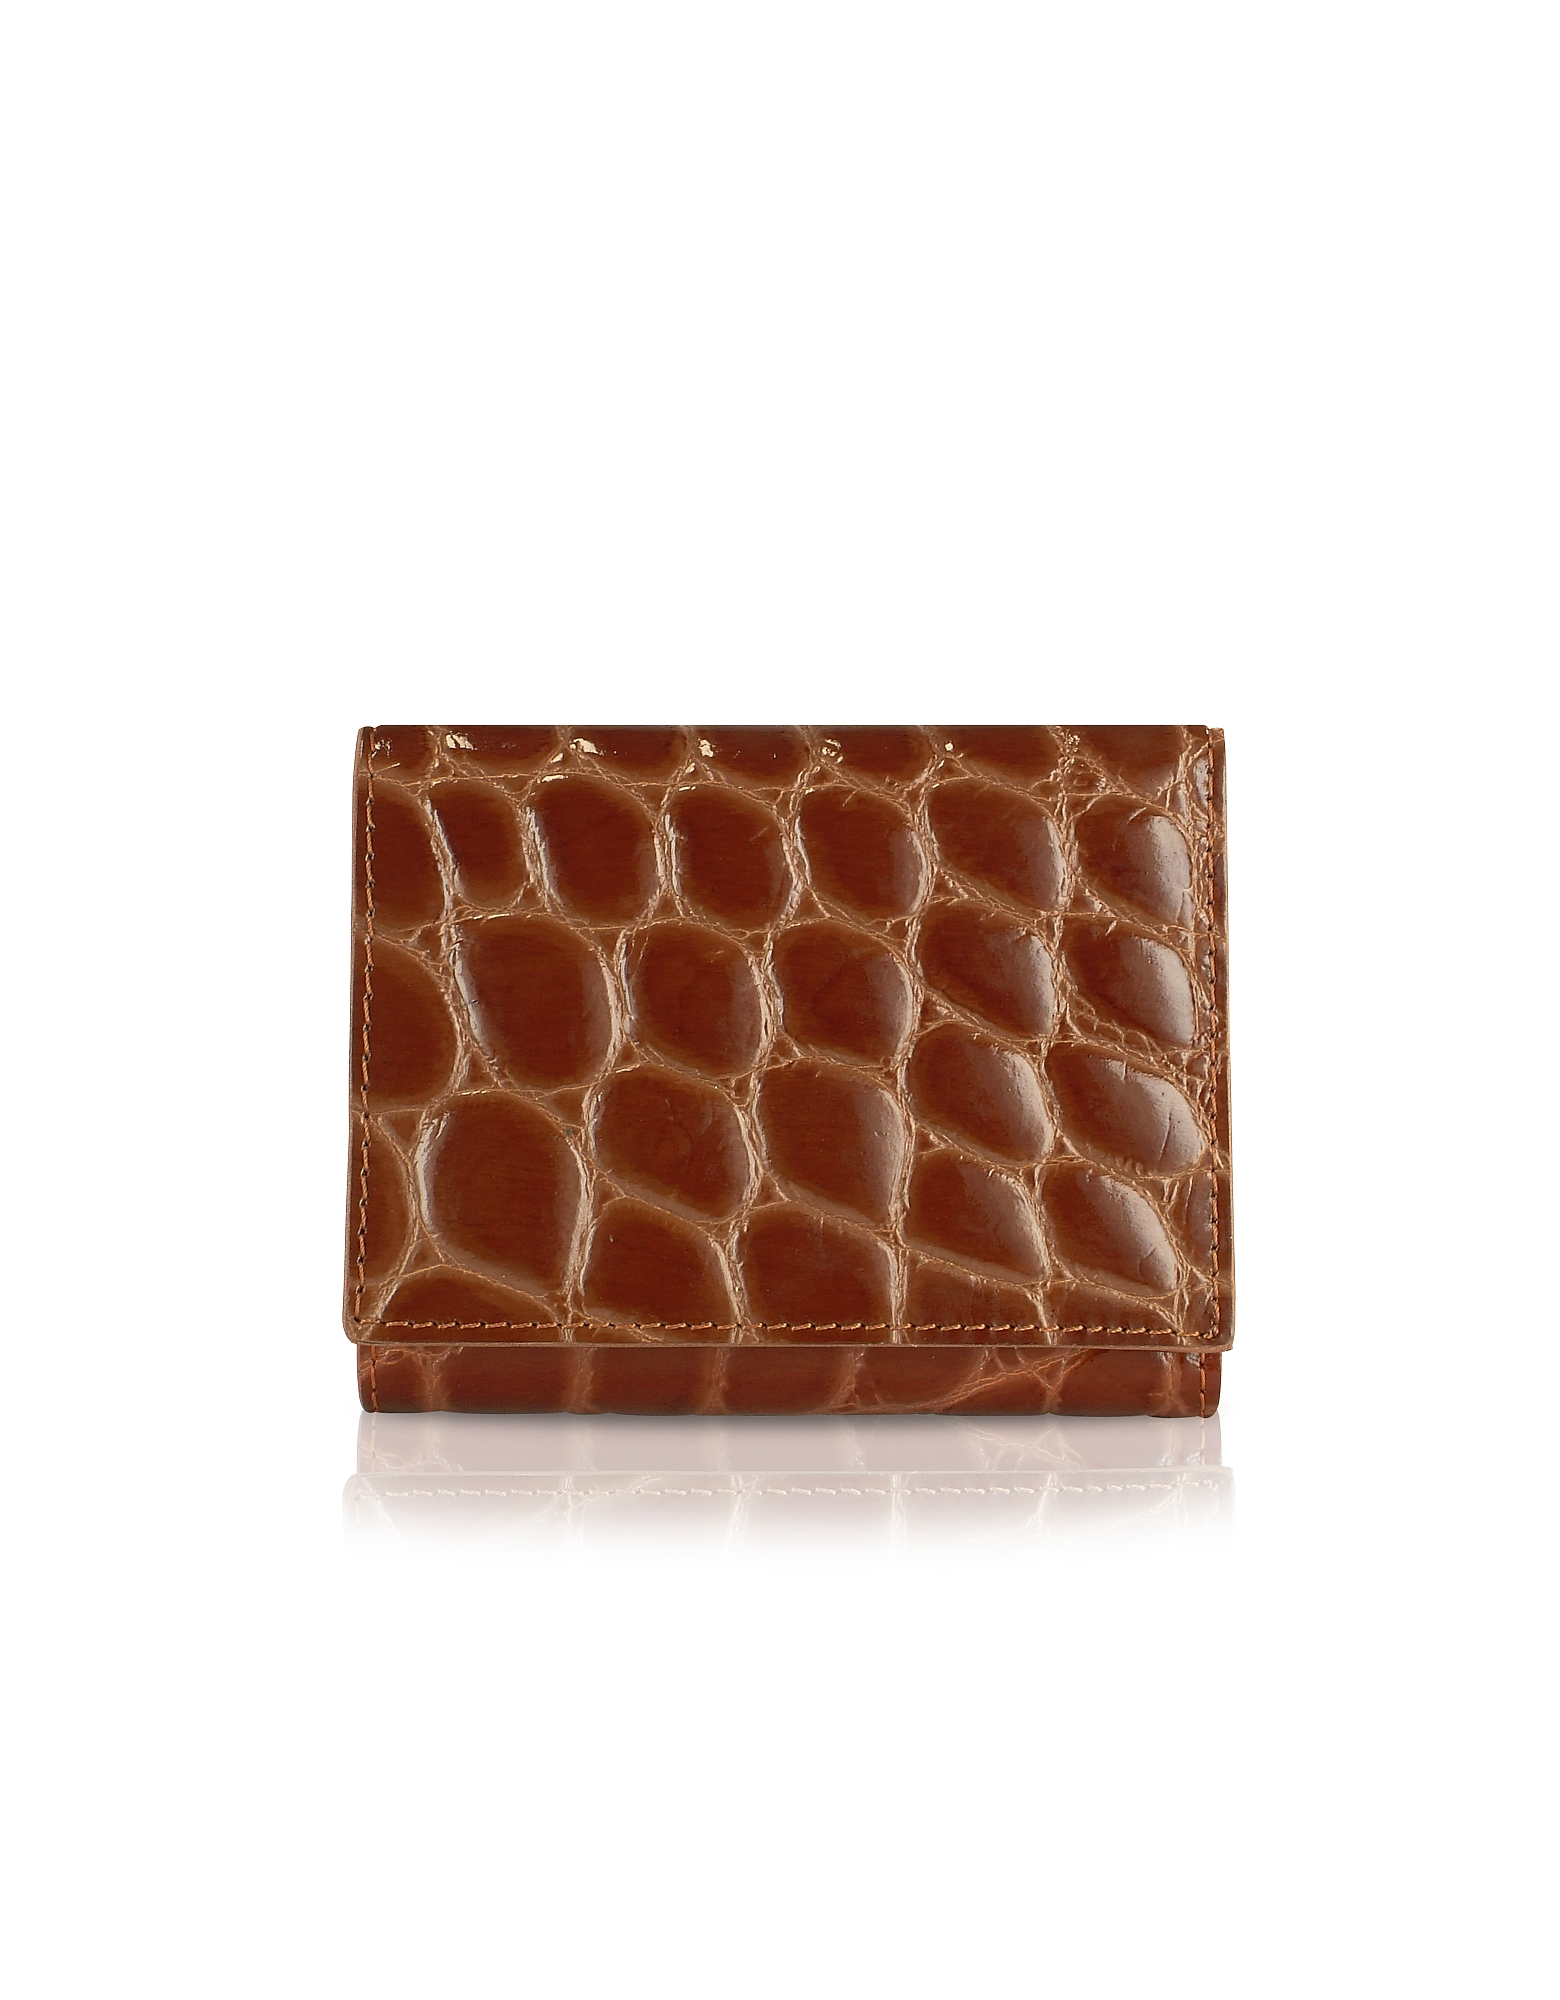 Giorgio Fedon 1919 Designer Wallets, Spiga - Women's Brown Croc Stamped Calfskin Small Wallet